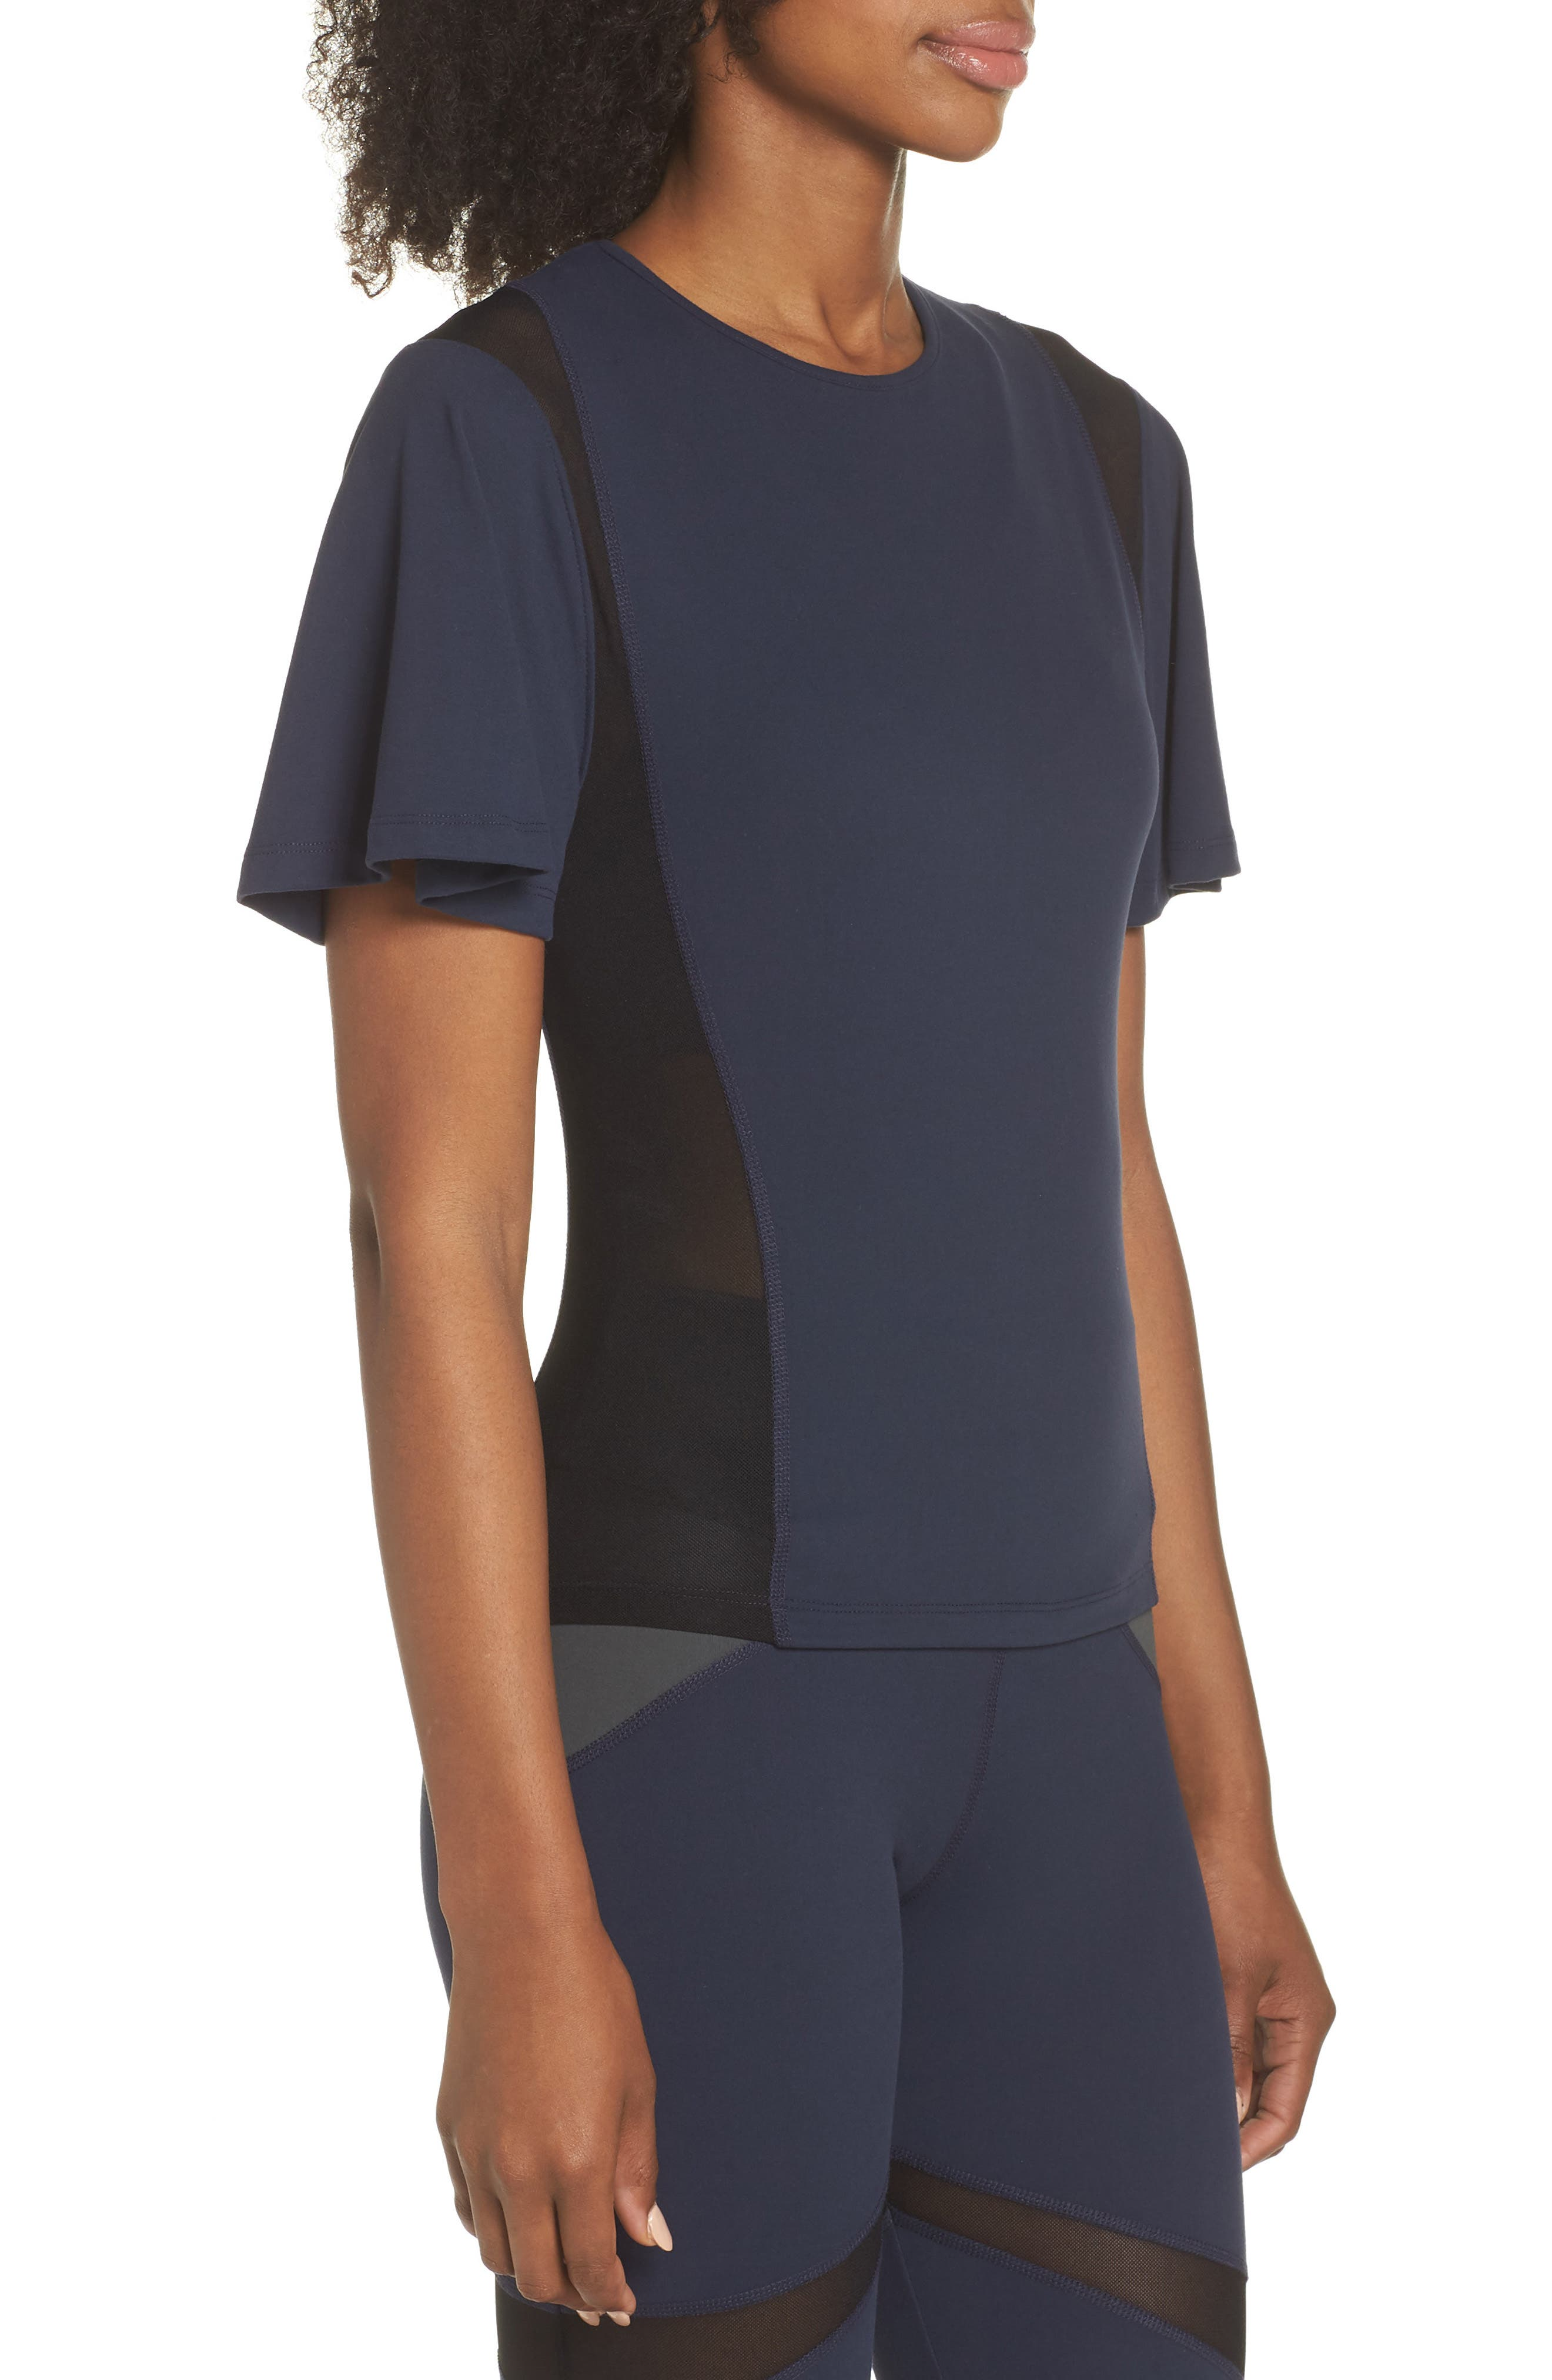 BoomBoom Athletica Wing Sleeve Tee,                             Alternate thumbnail 3, color,                             NAVY/ BLACK